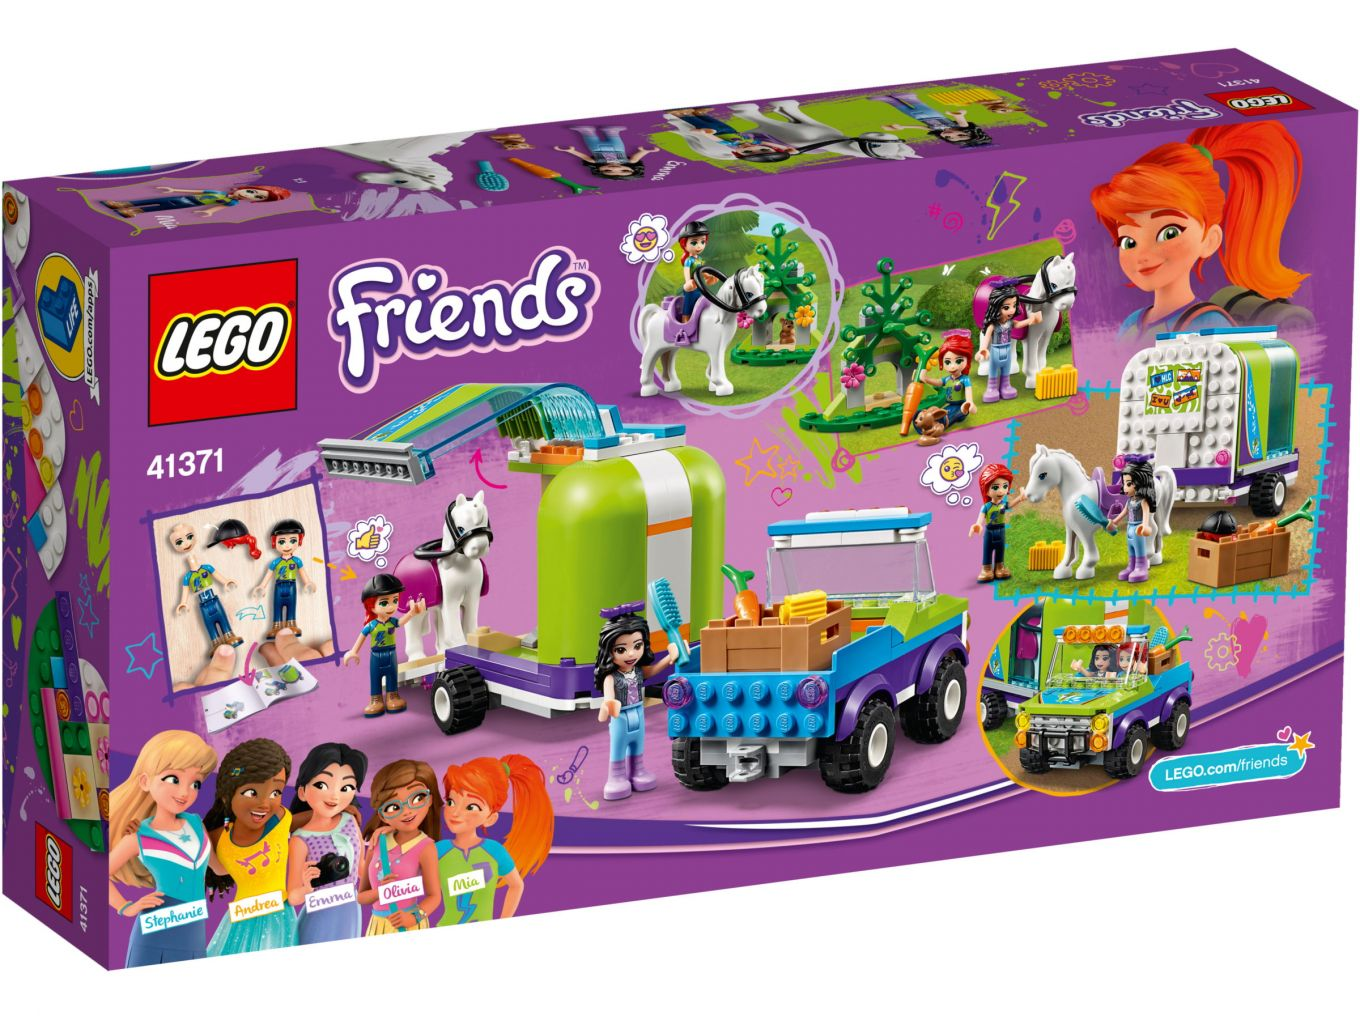 Lego Friends 41371 Mias Horse Trailer Box Back The Brothers